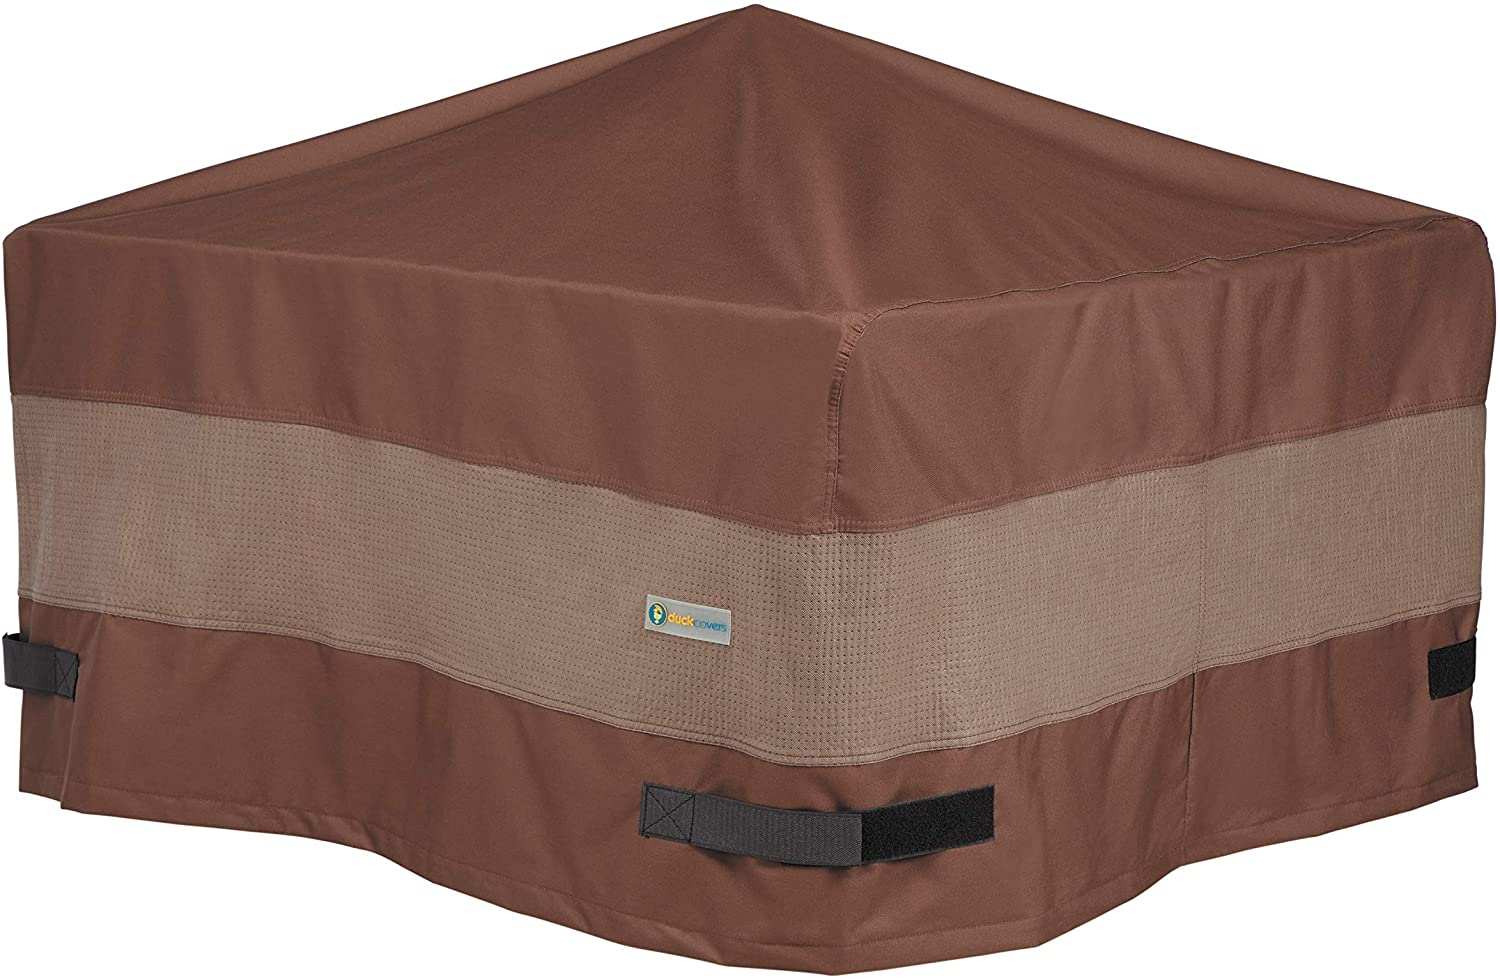 Duck Covers Ultimate Square Fire Pit Cover, 40-Inch